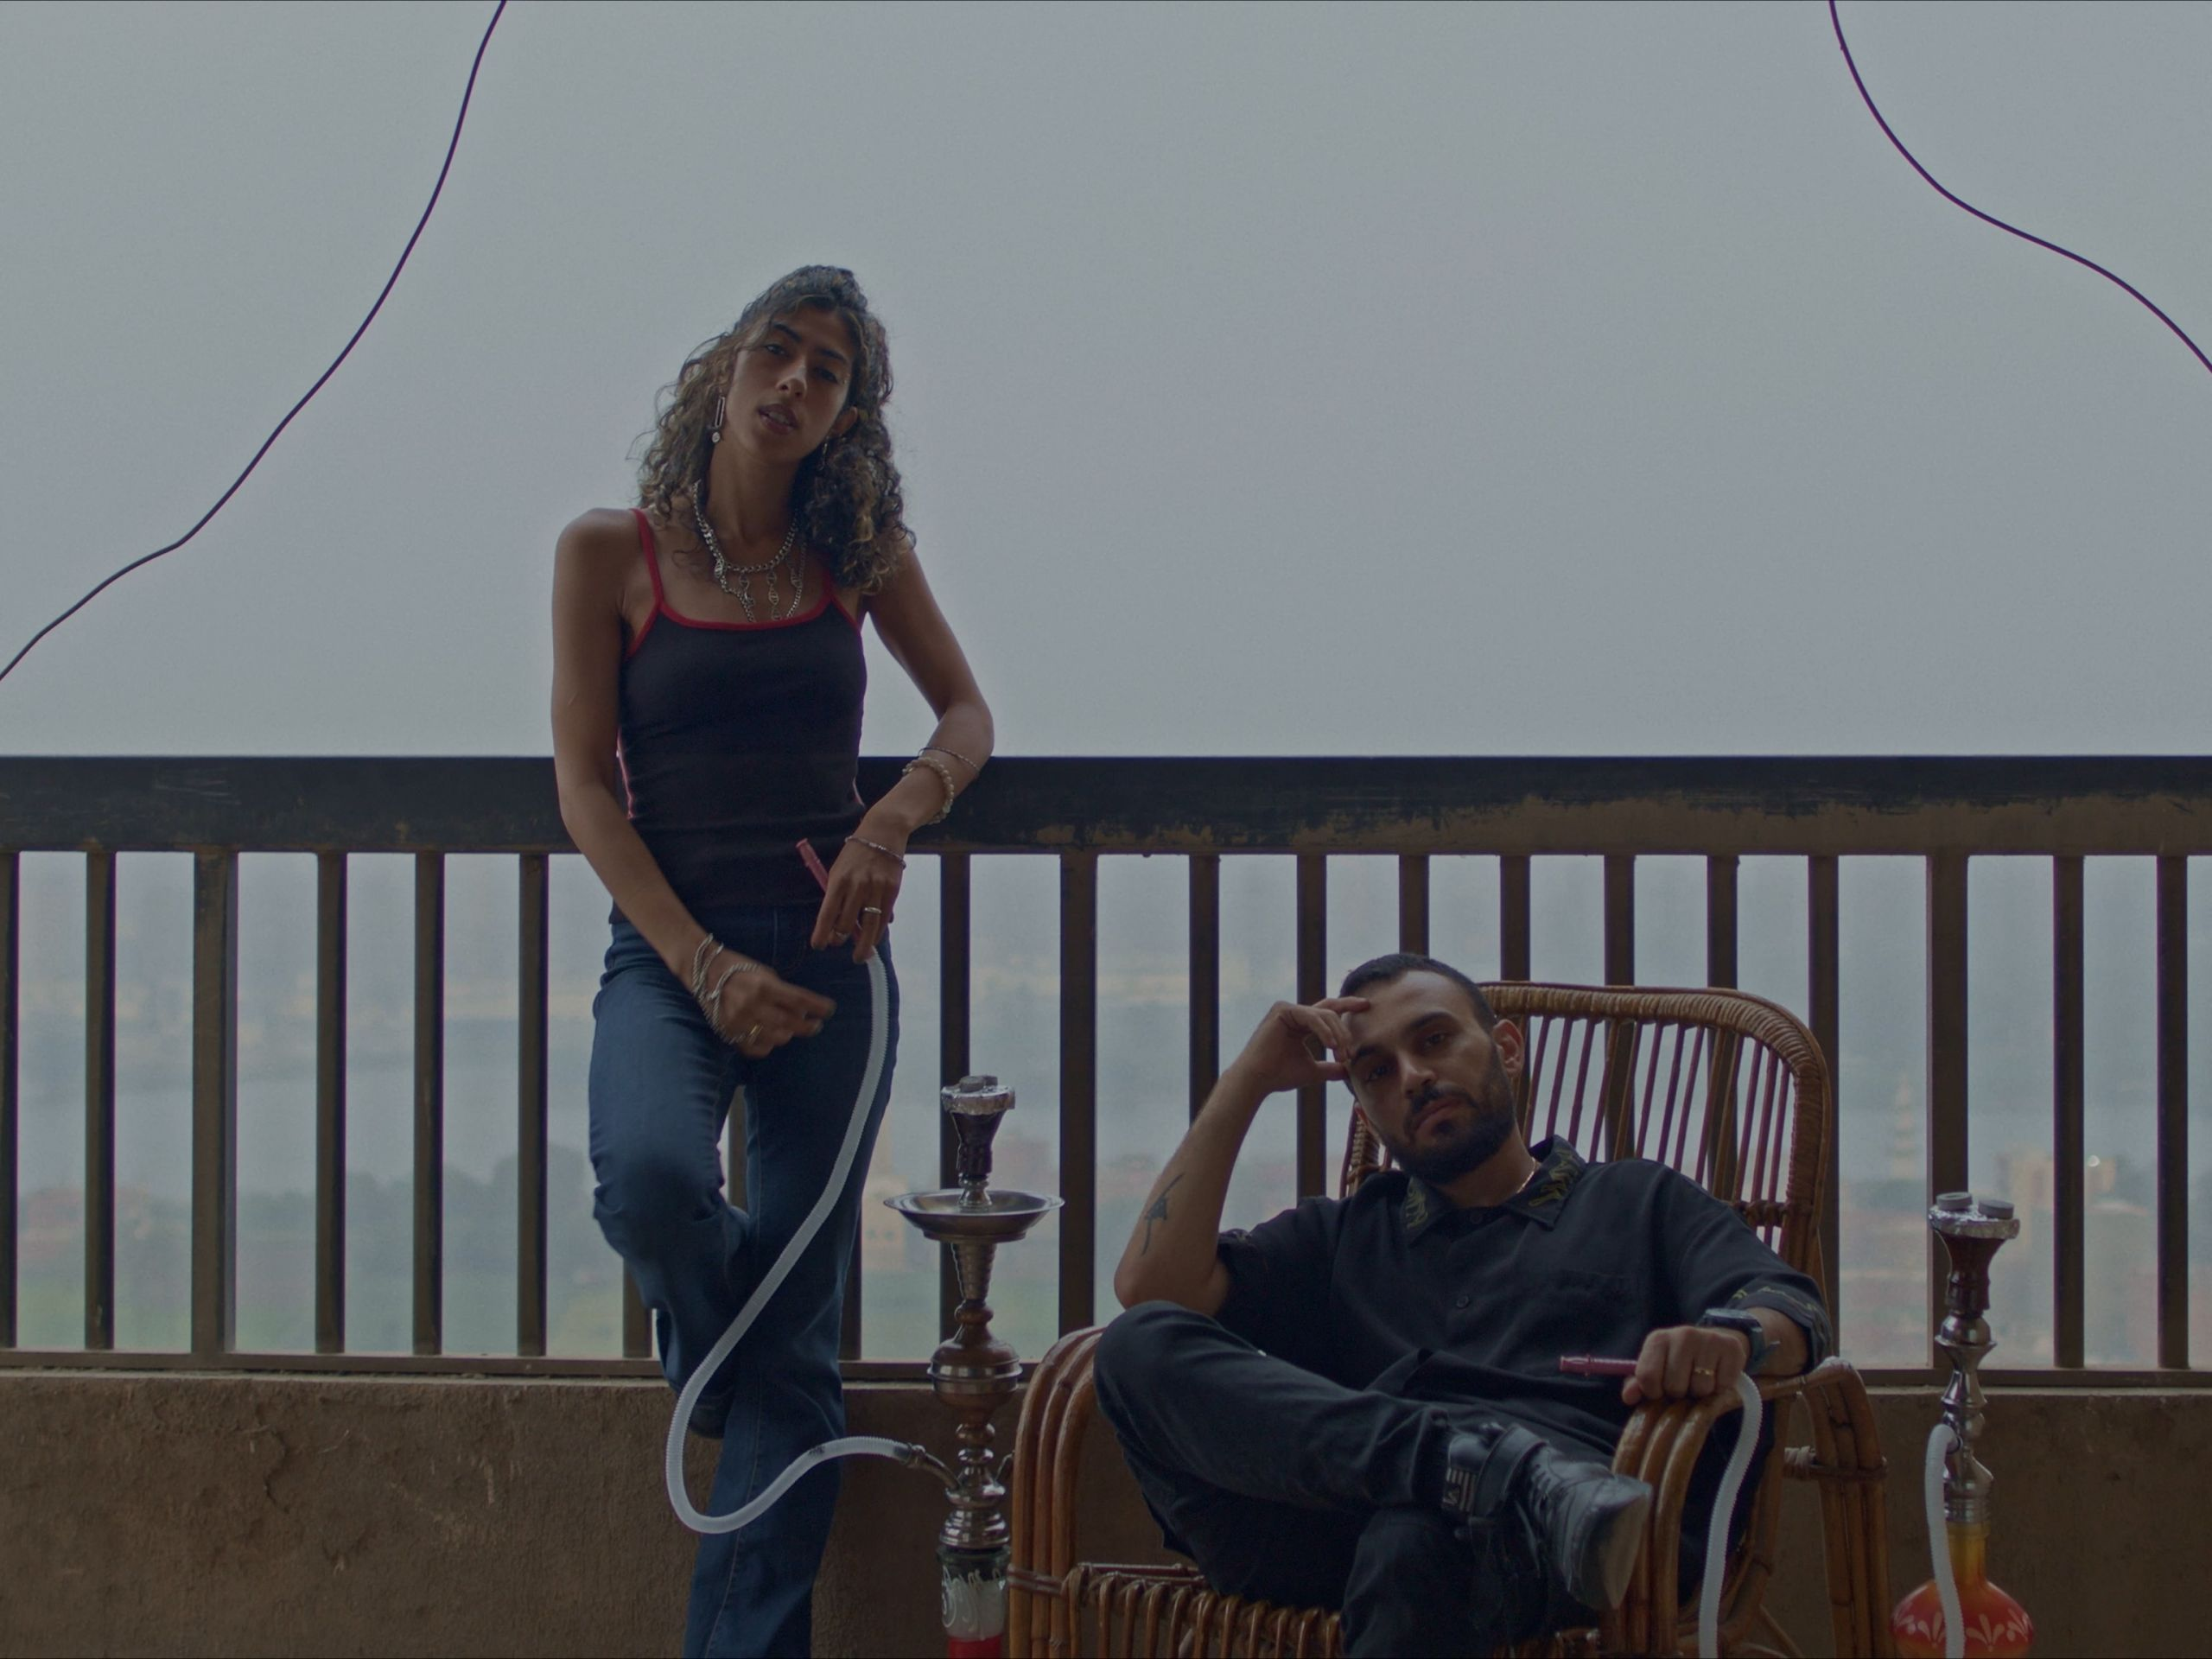 A portrait of a man and woman on a balcony. She is standing he is seated, both have shisha pipes.